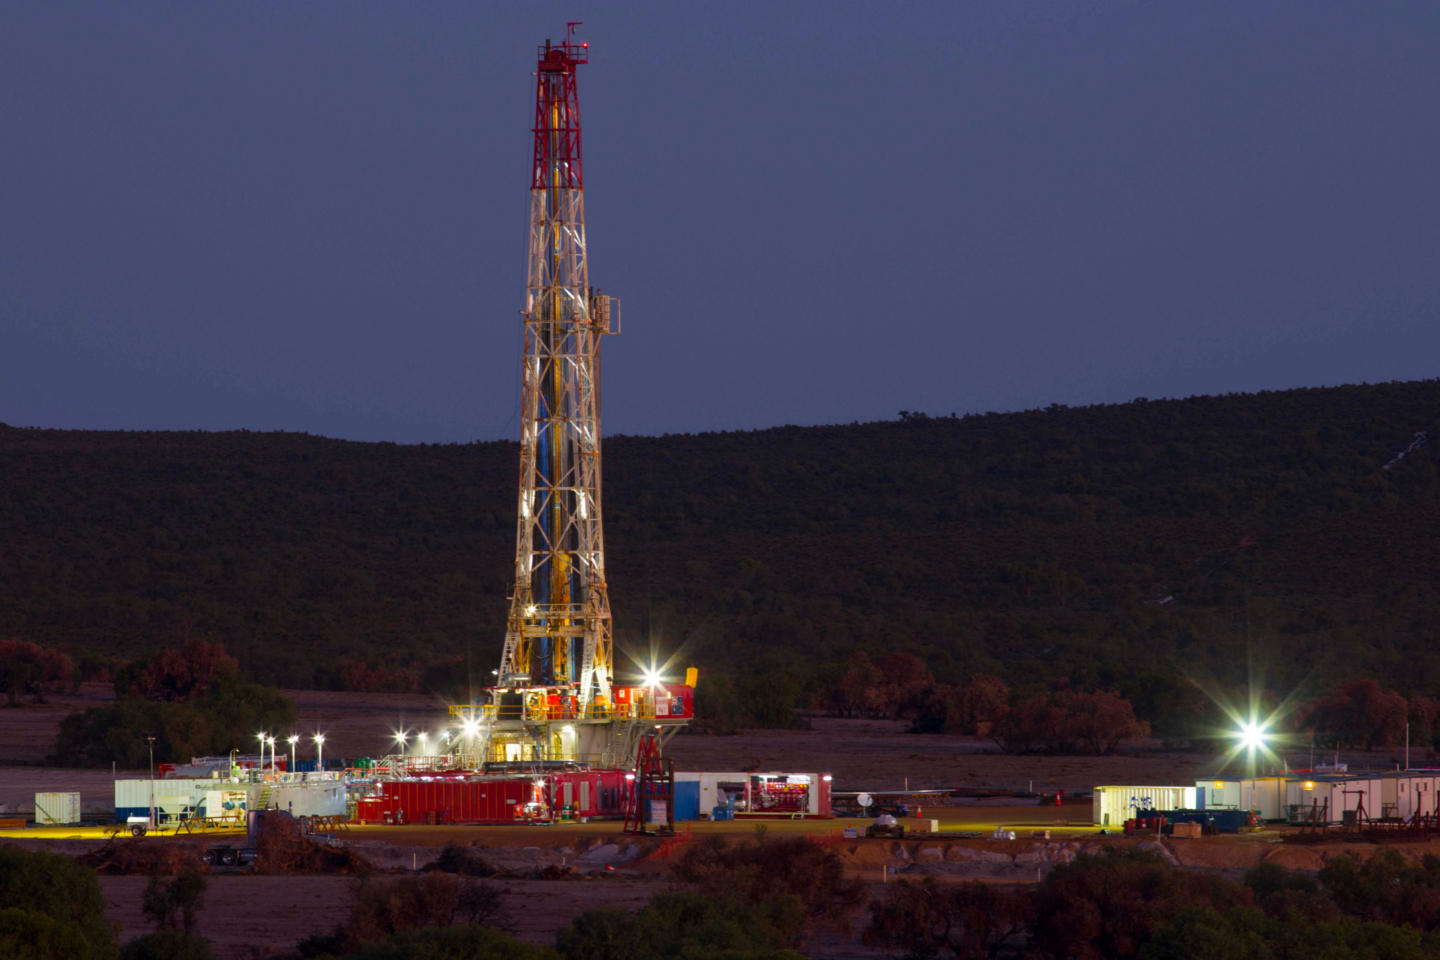 Who are the main land drilling rig contractors in the US?